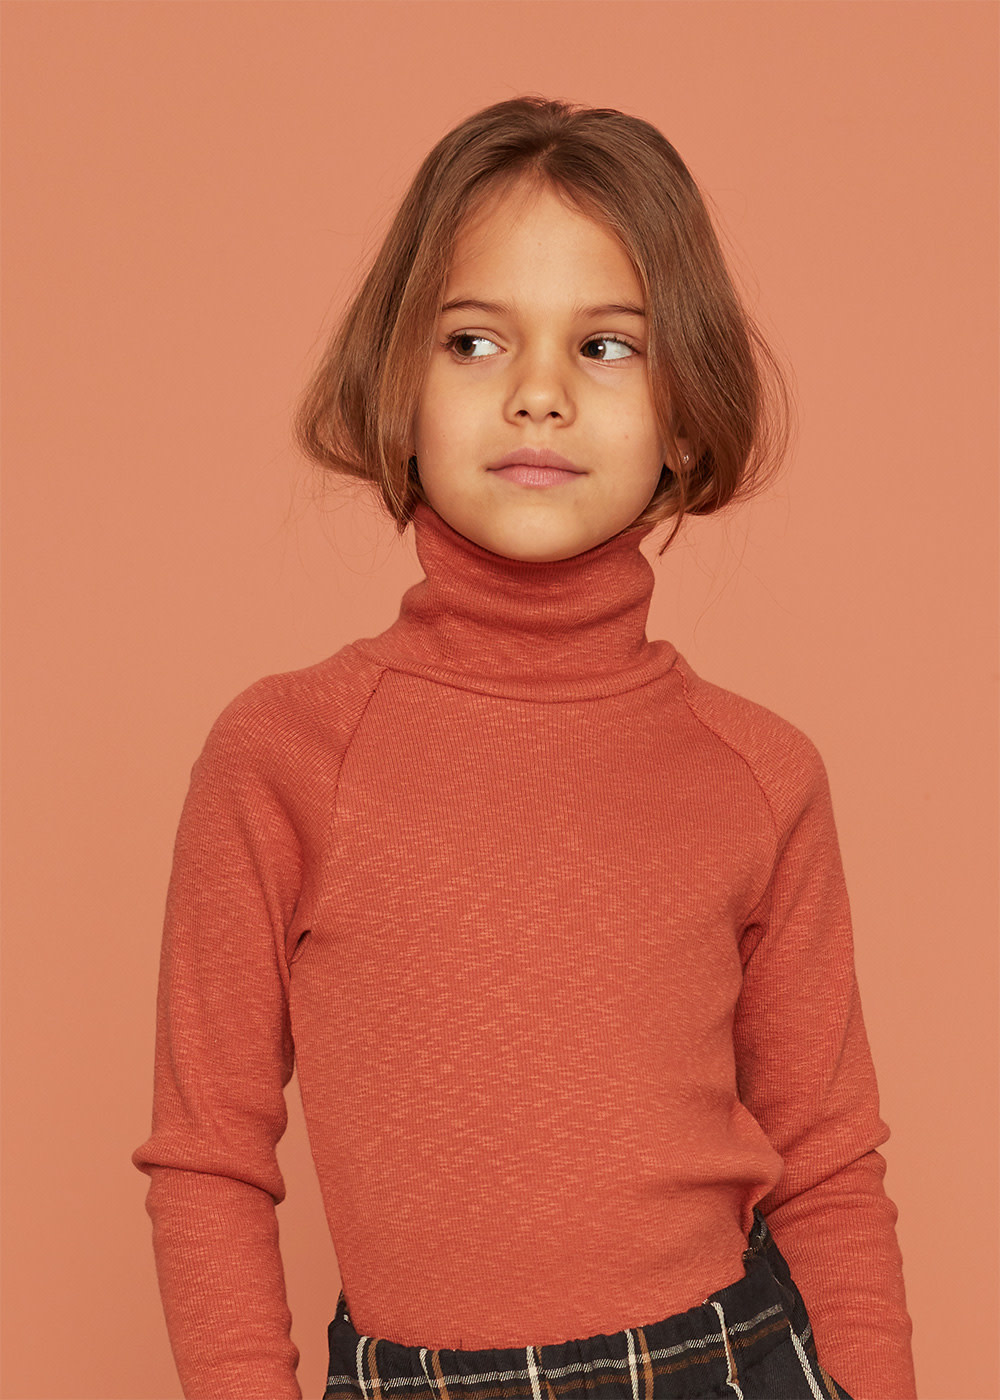 Kids on the moon Kids on the moon - Copper turtleneck top